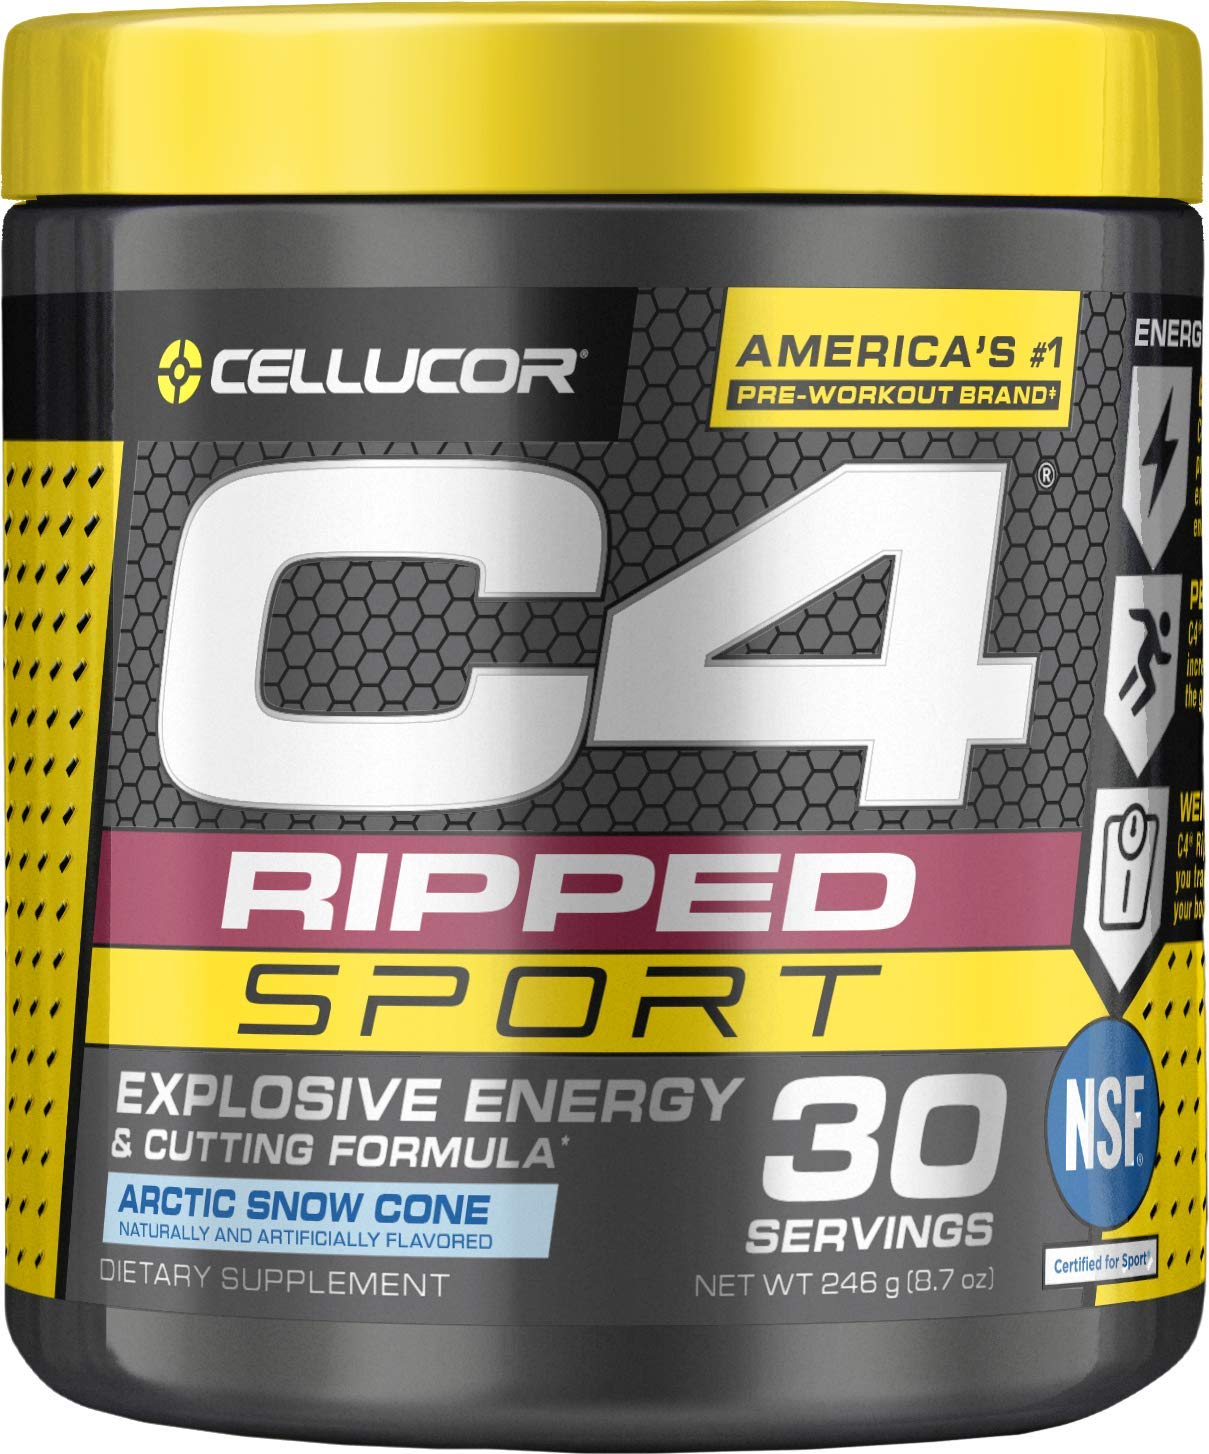 Cellucor C4 Ripped Sport Pre Workout Powder, Arctic Snow Cone, 30 Servings - Preworkout Powder for Men & Women with Green Coffee Bean Extract & L Carnitine